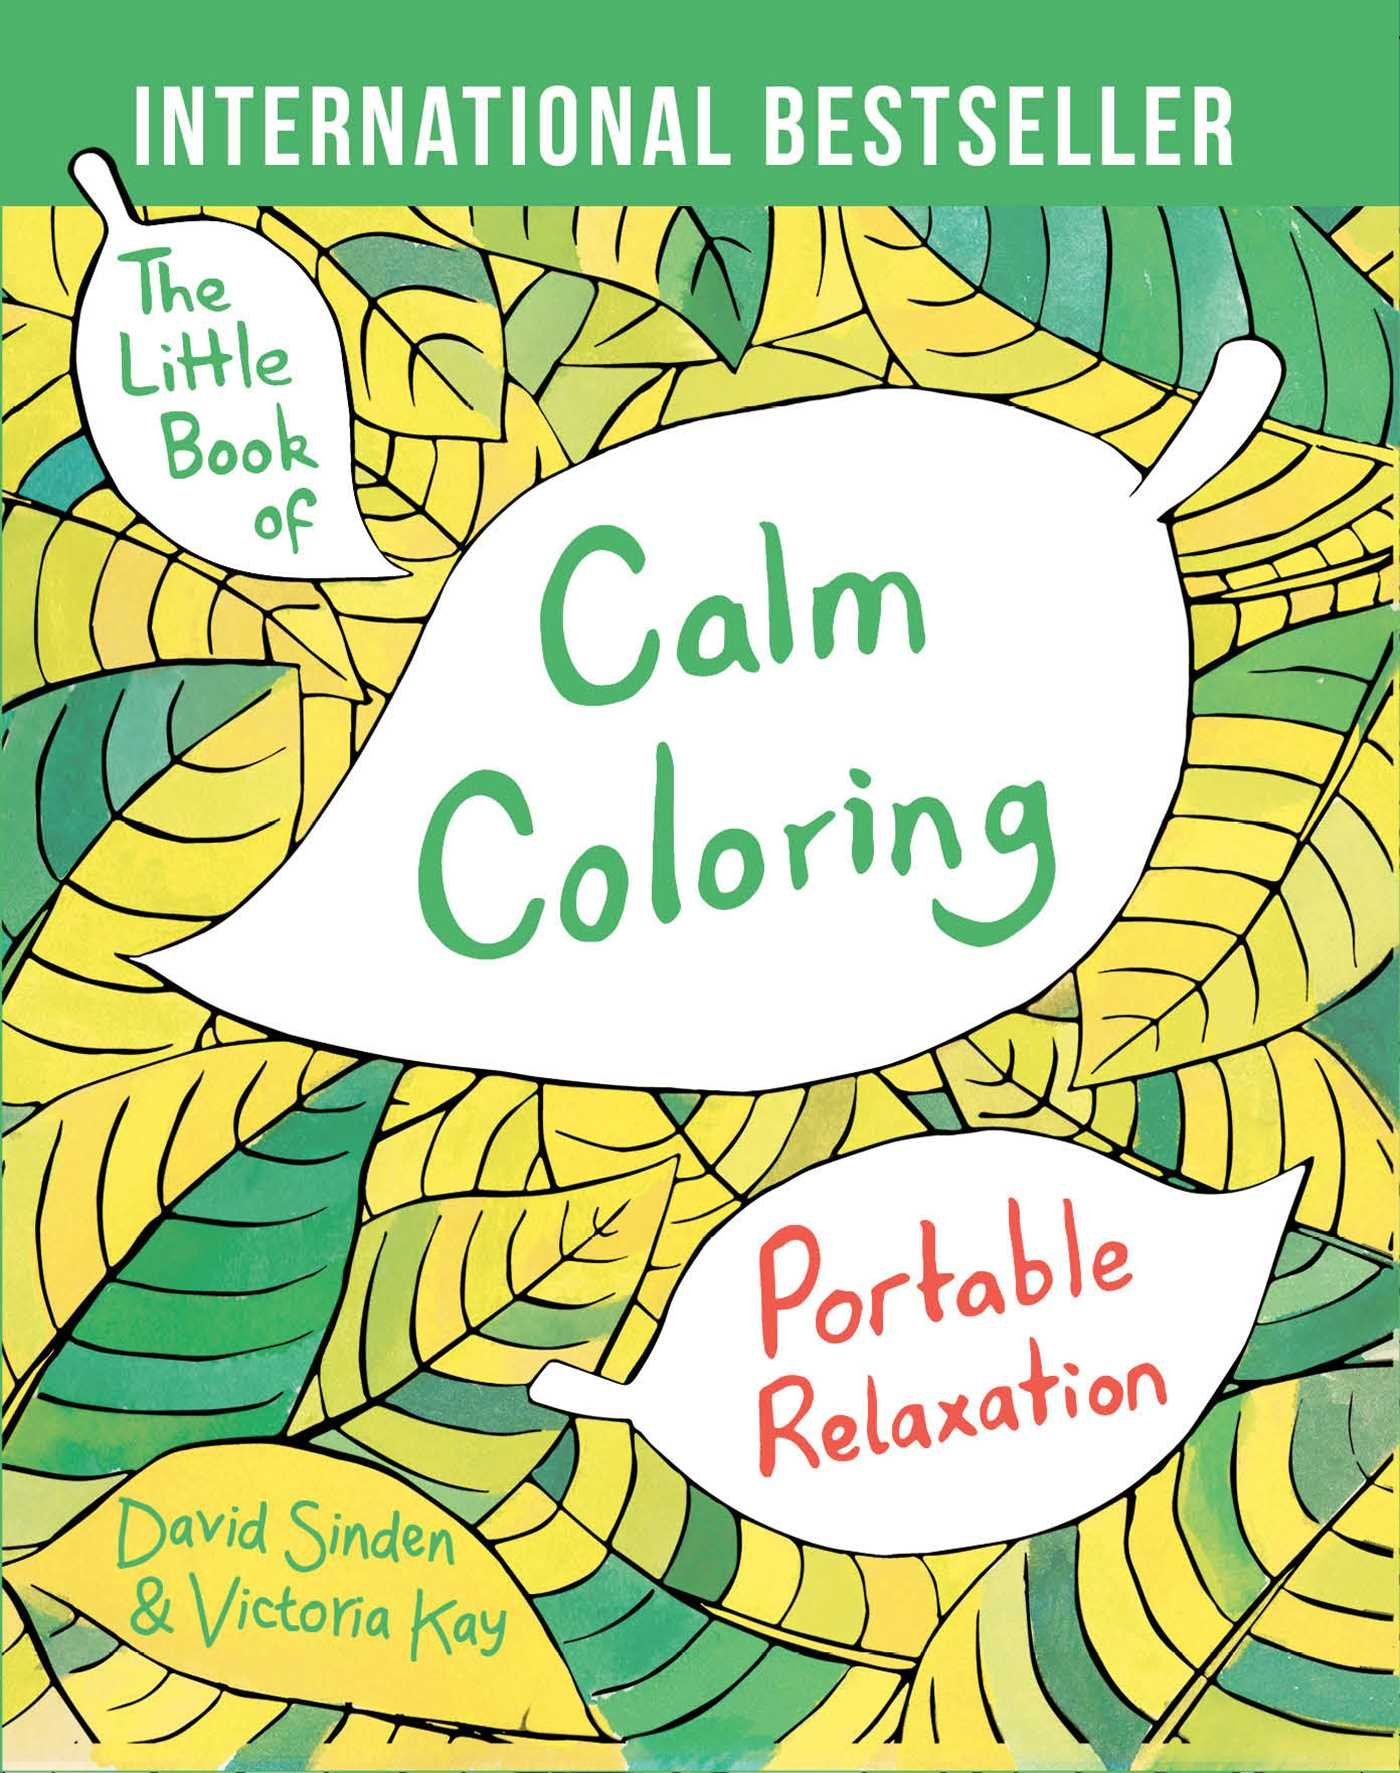 The Little Book of Calm Coloring: Portable Relaxation ebook